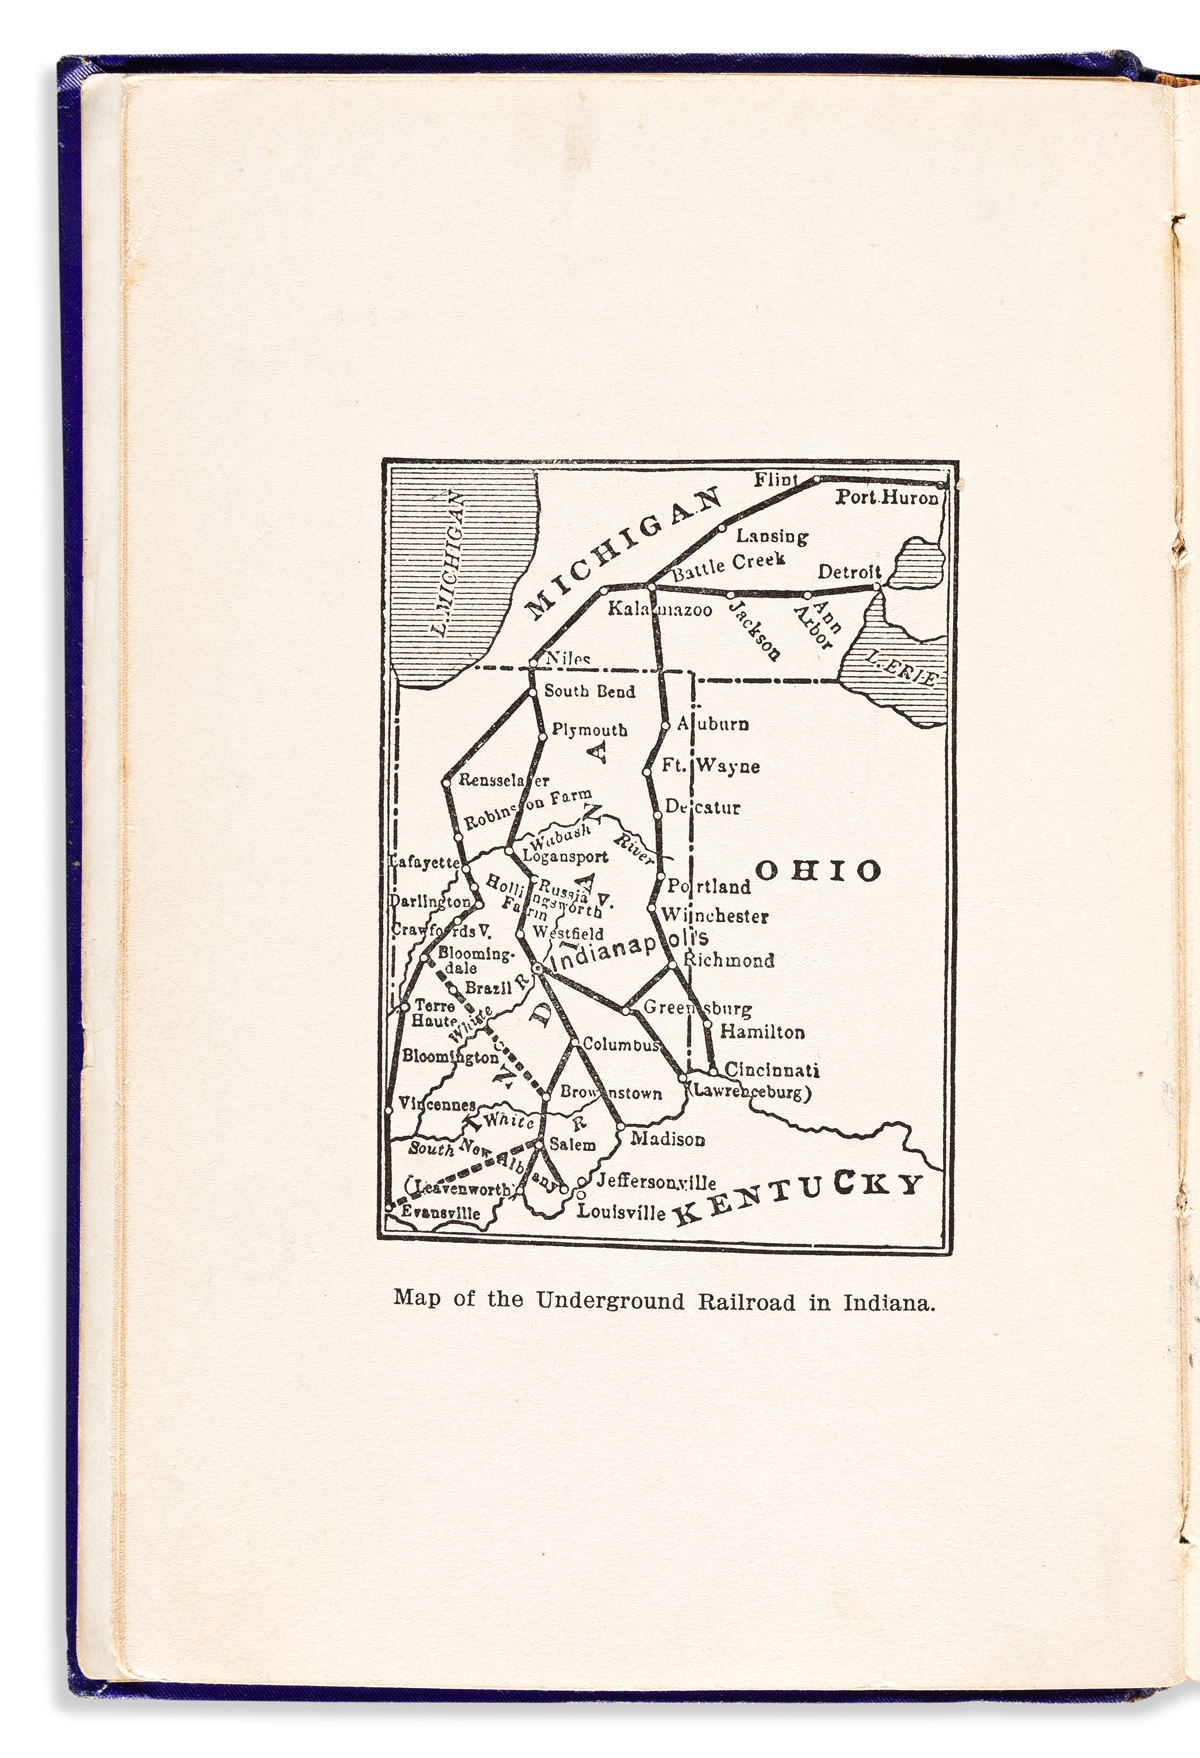 (SLAVERY AND ABOLITION.) William M. Cockrum. History of the Underground Railroad as It was Conducted by the Anti-Slavery League,